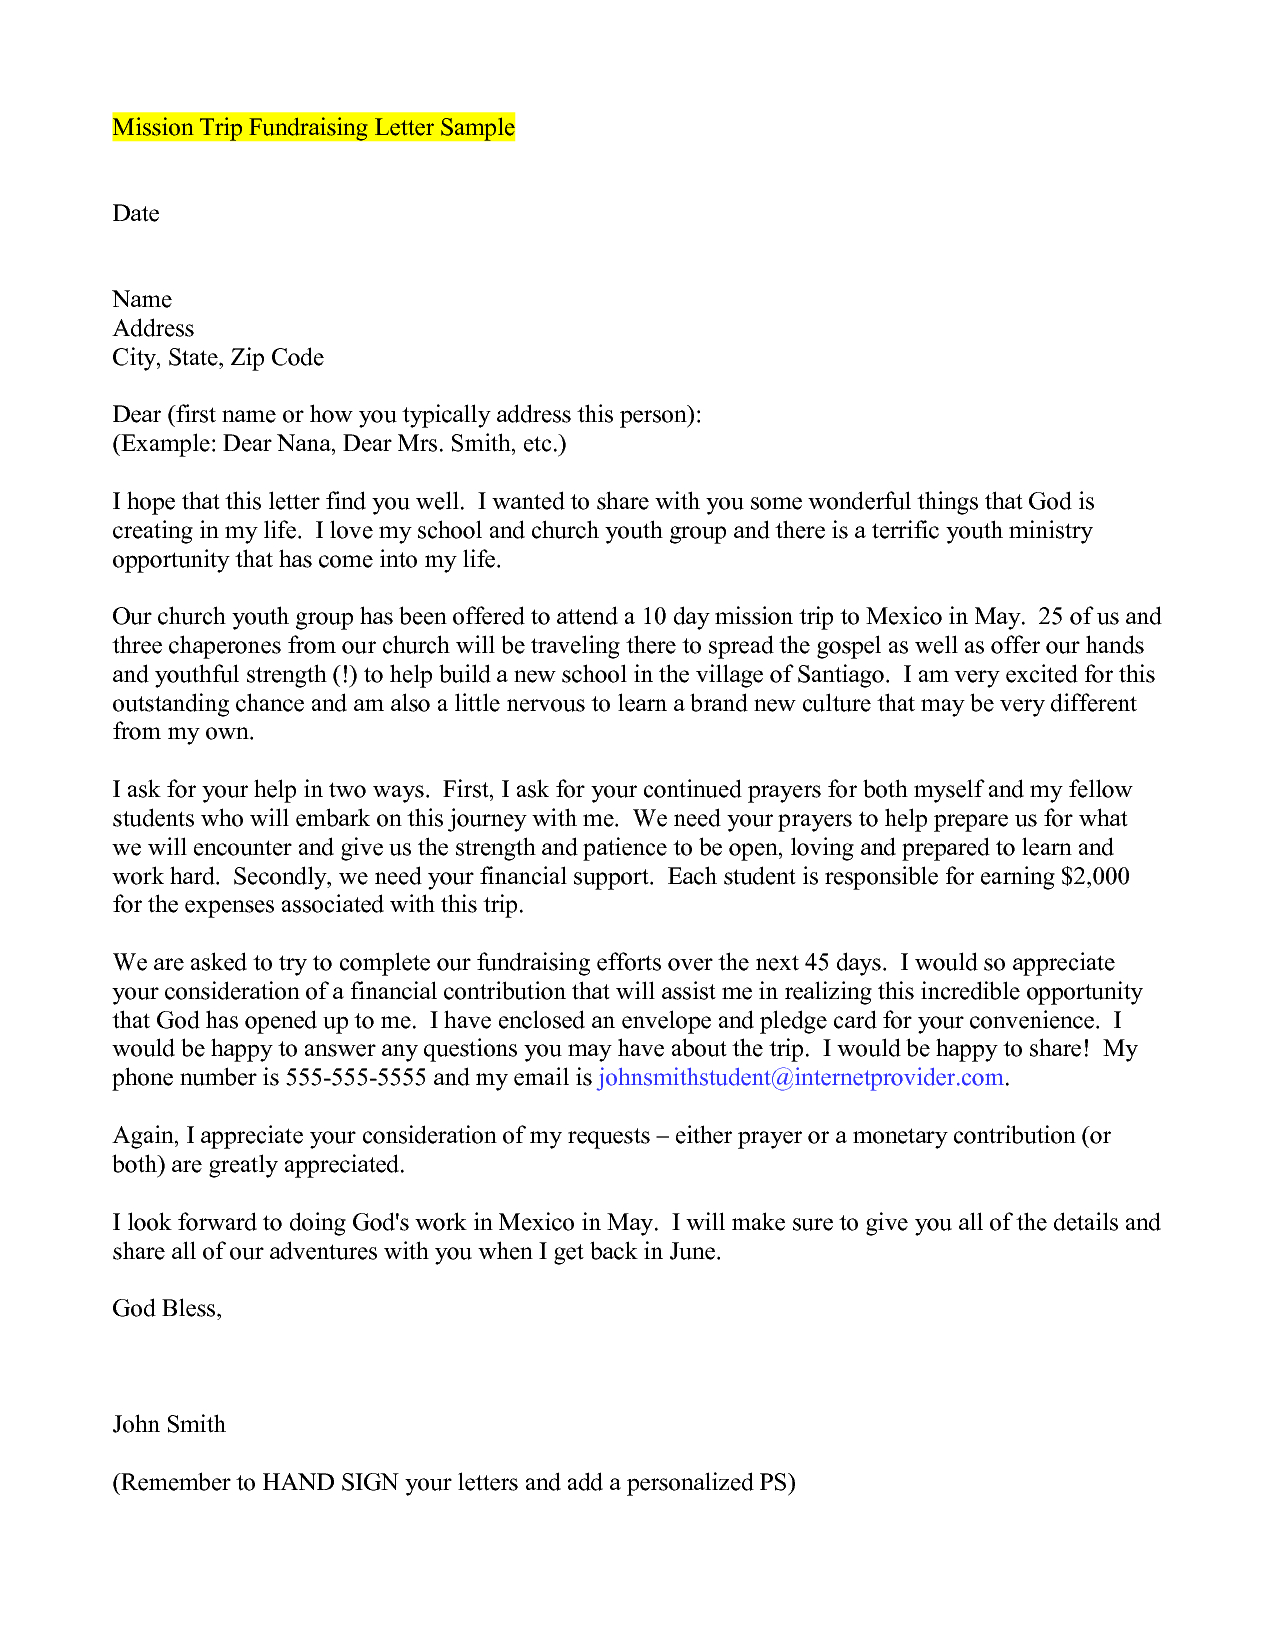 Mission Trip Letter Template - How to Write A Mission Trip Support Letter Choice Image Letter